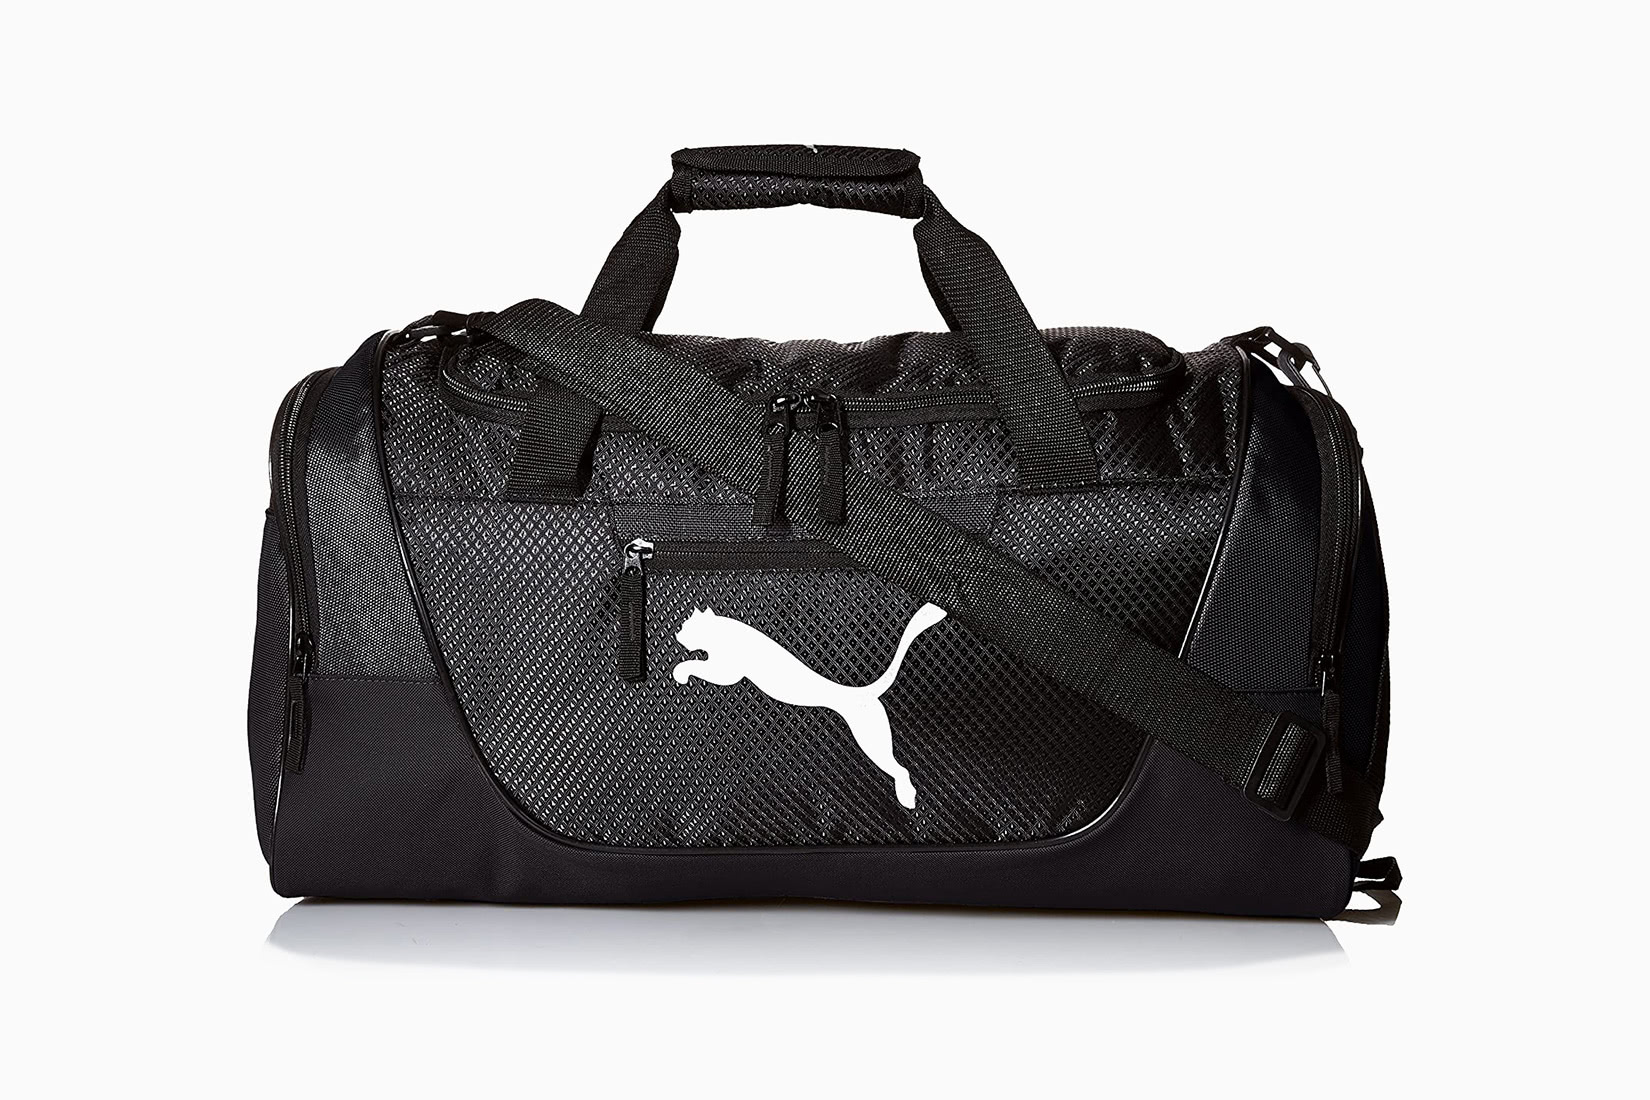 15 Best Gym Bags For Men: Top Backpacks & Duffels of 2021